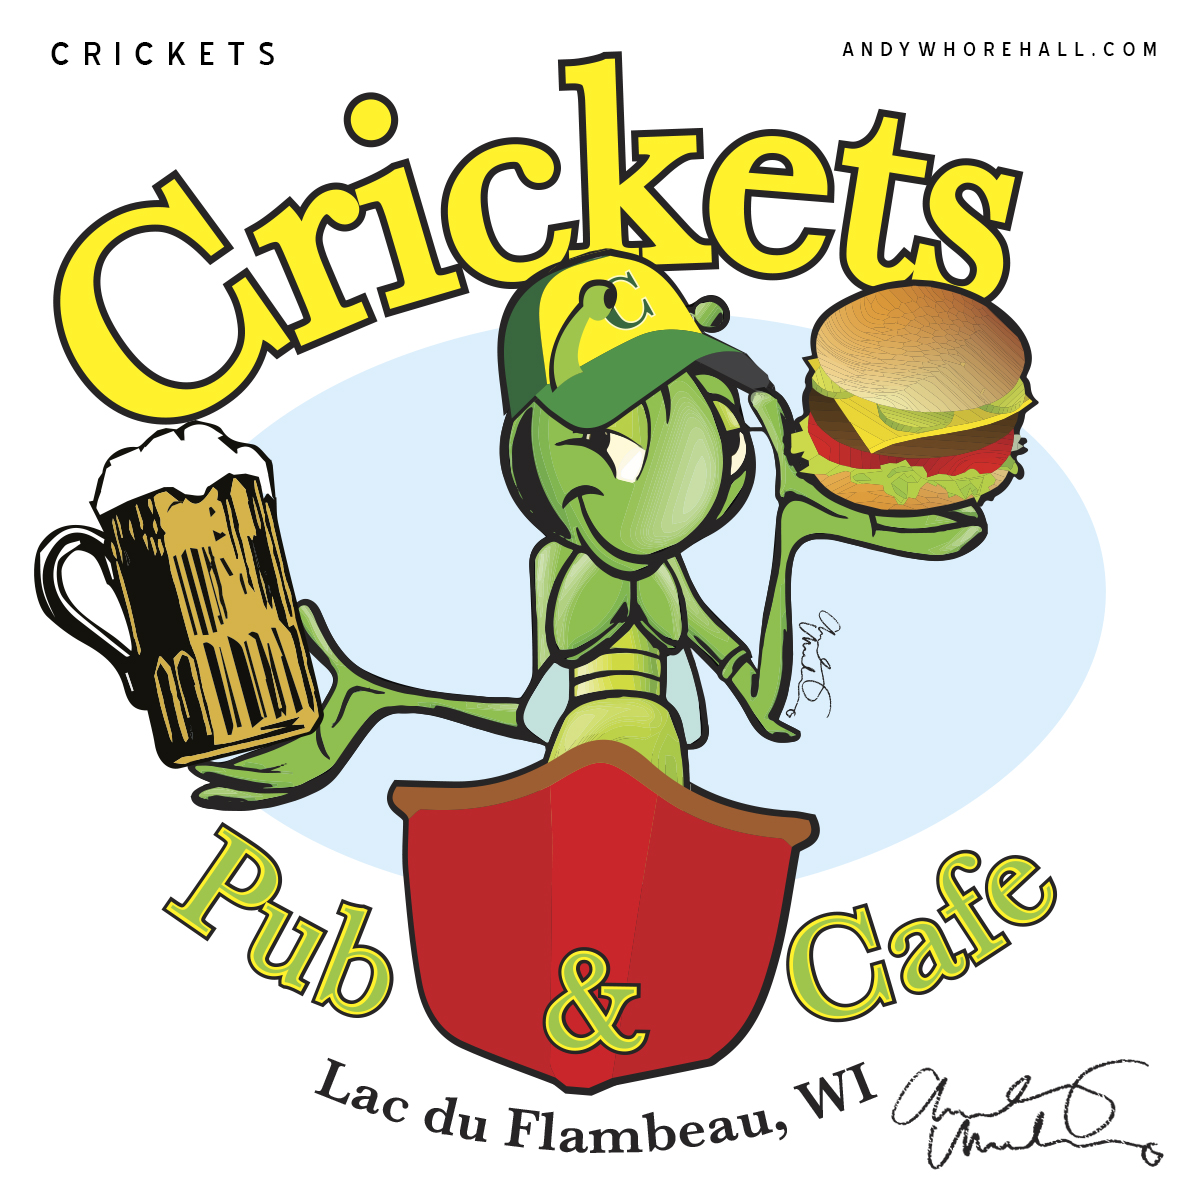 Crickets_Pub-Logo-Mock_Andy-Whorehall